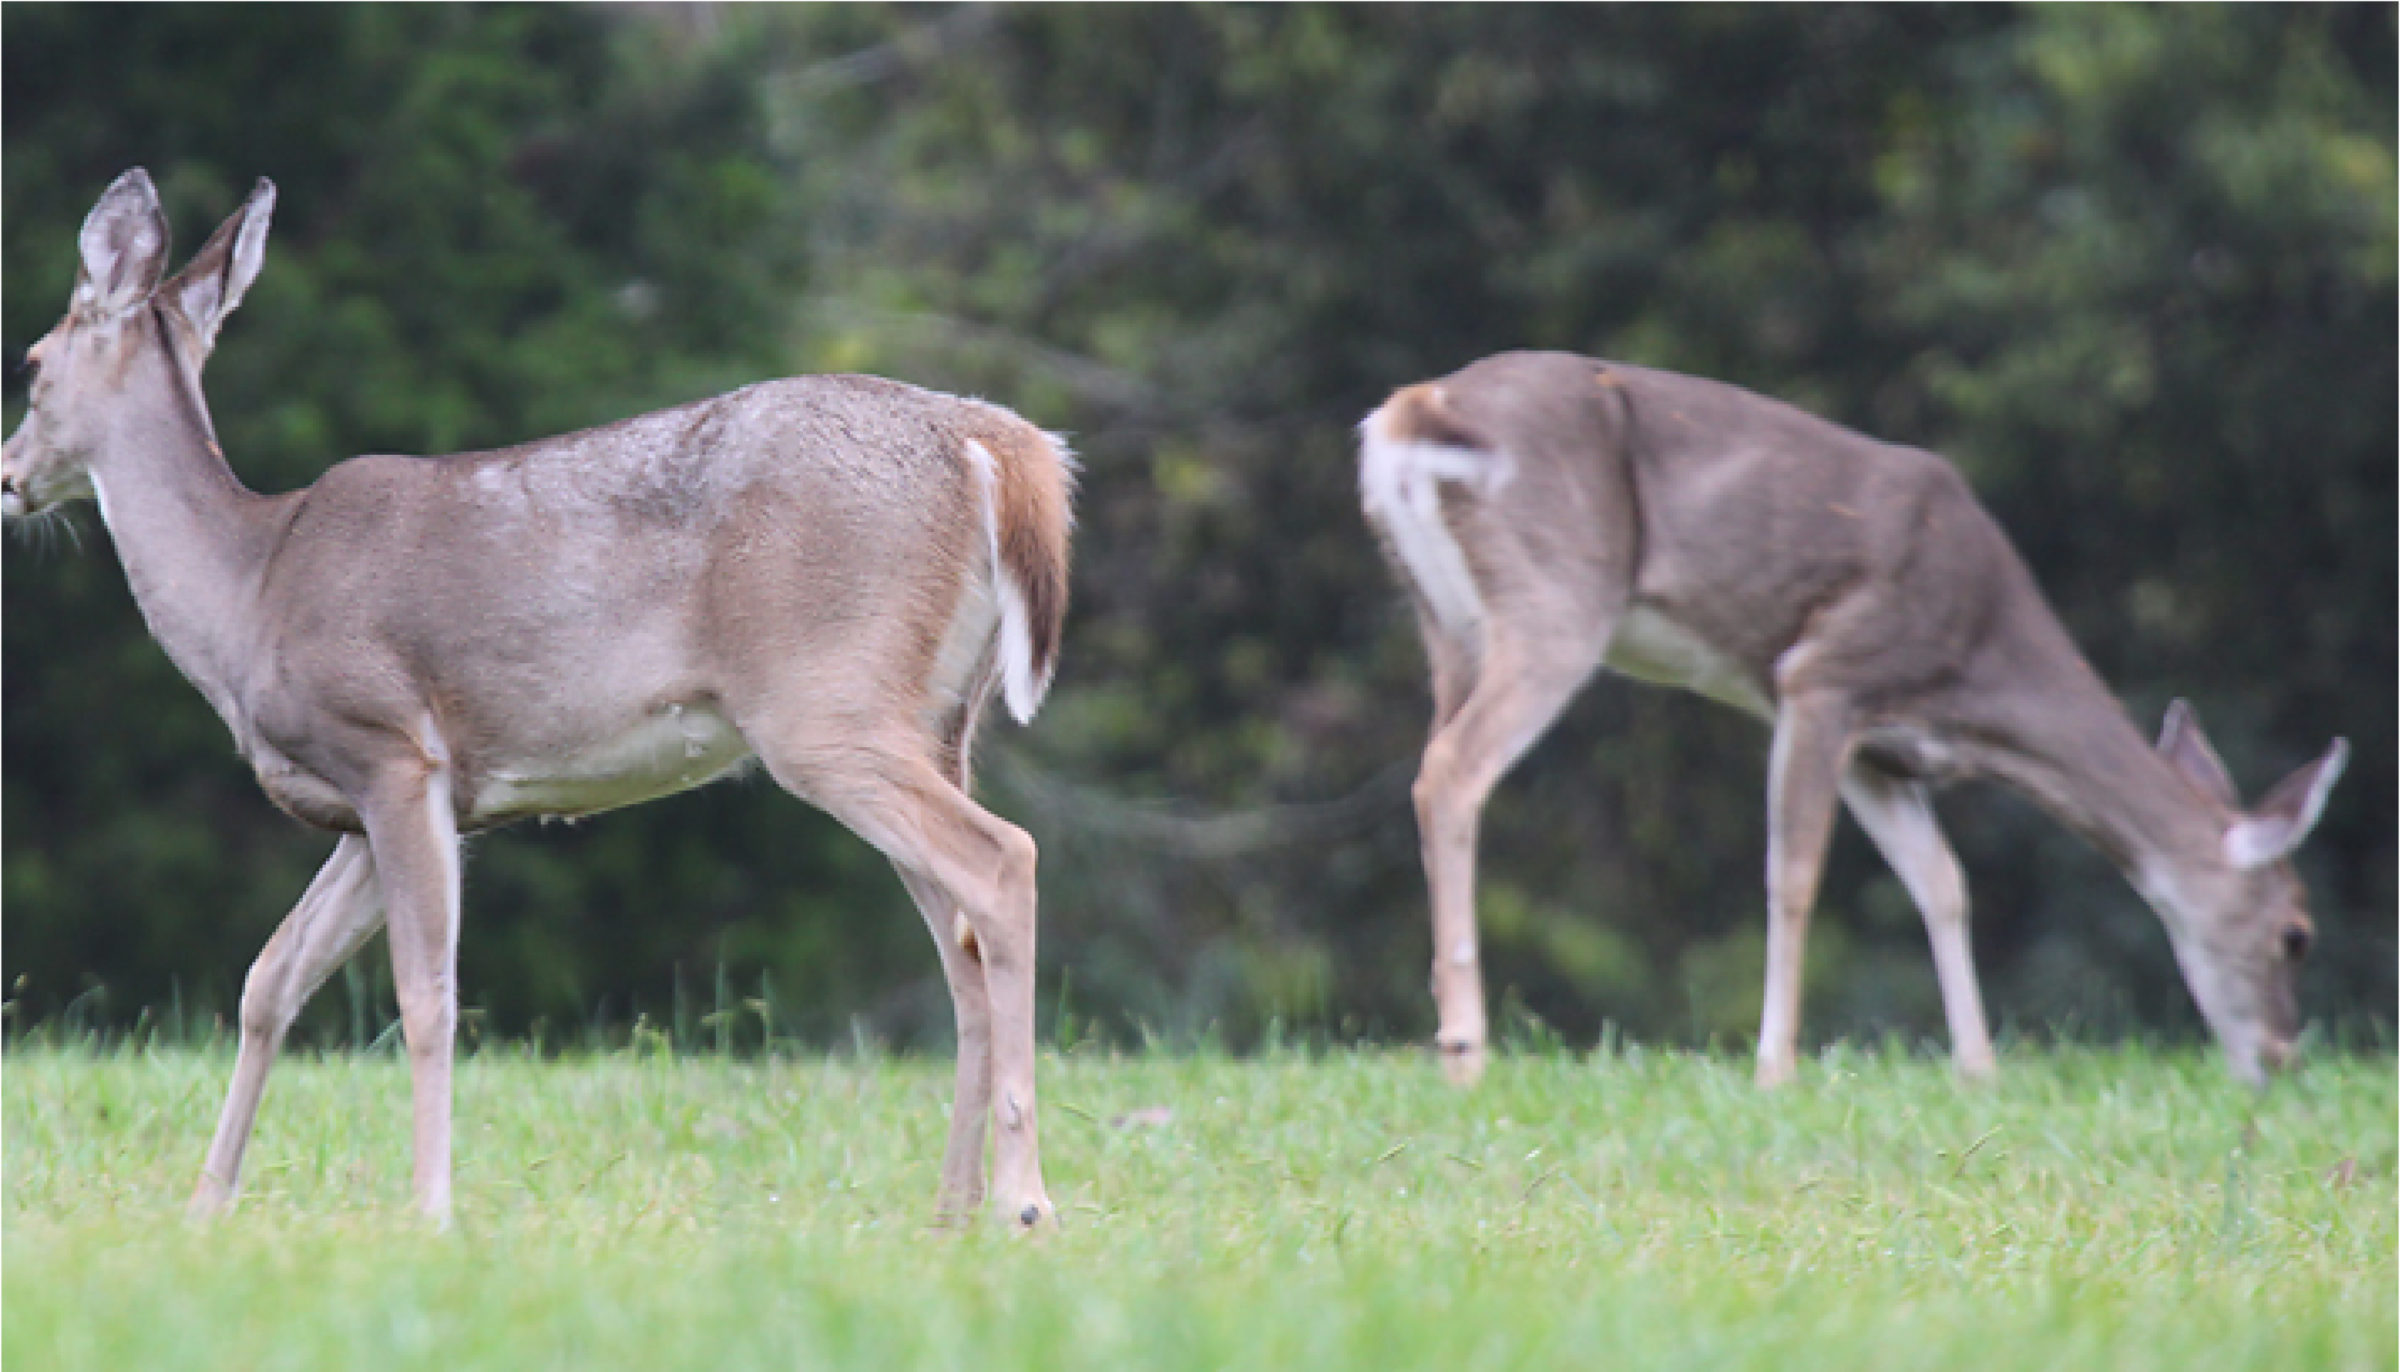 This photo shows two doe grazing